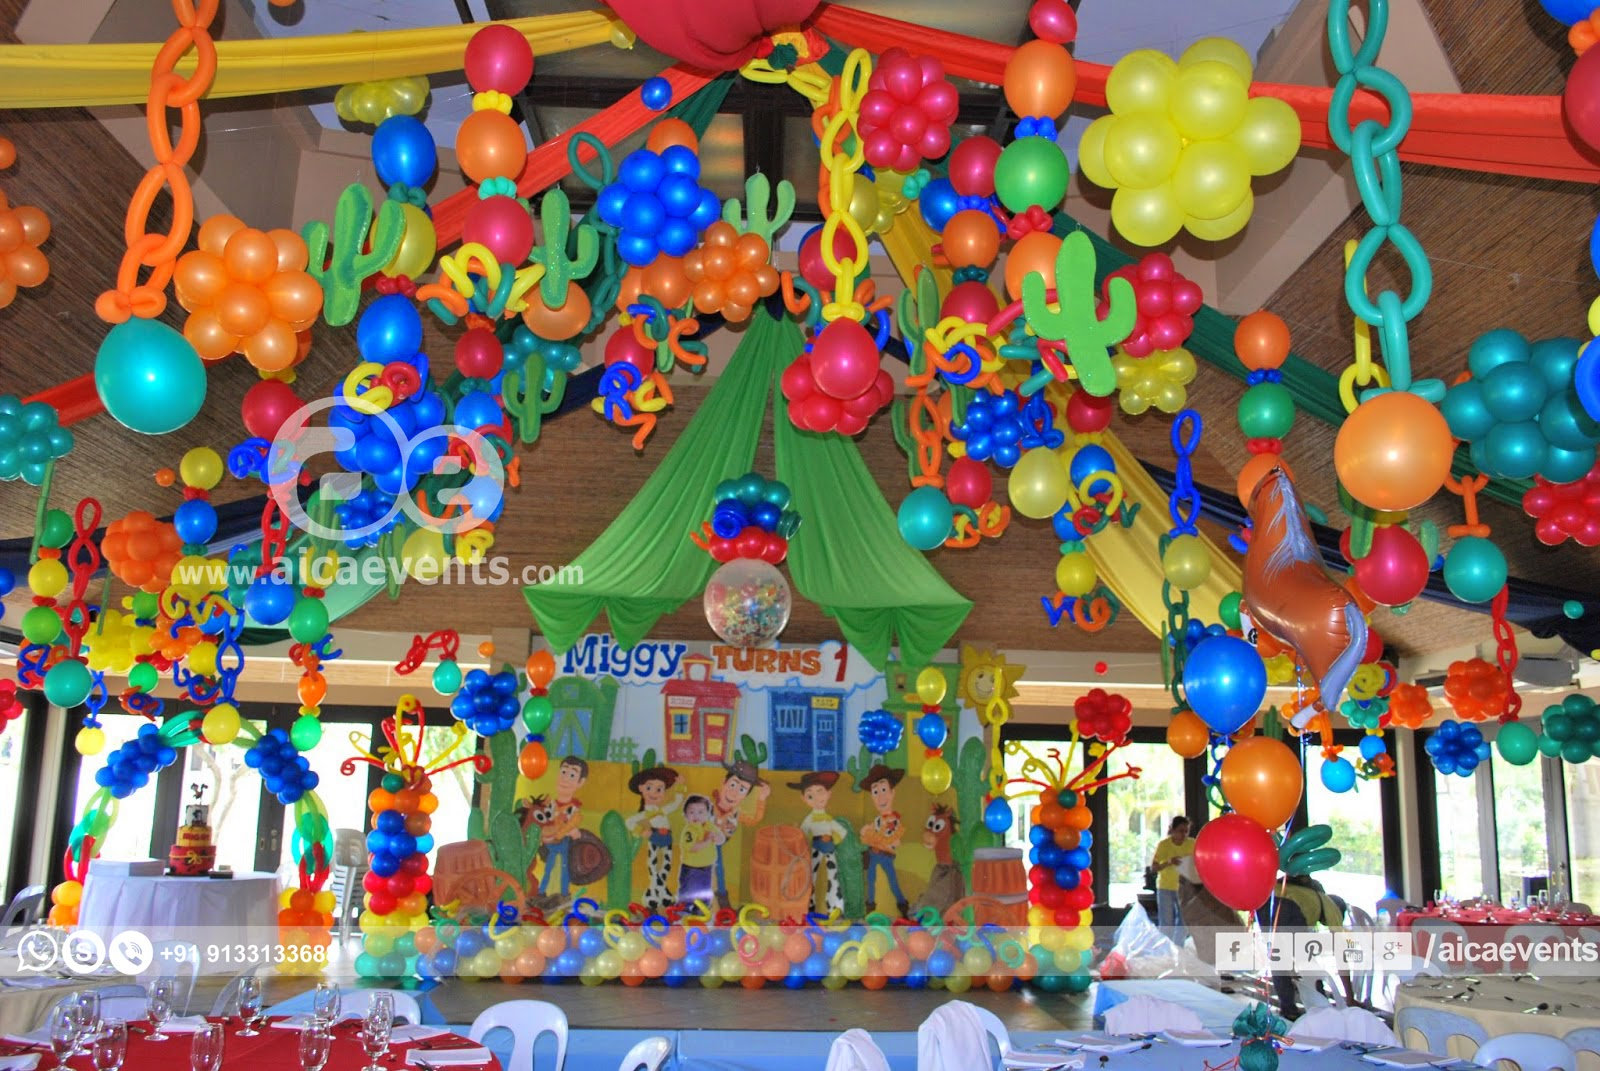 Toy Story Party Ideas Decorations : Aicaevents toy story theme birthday party decorations